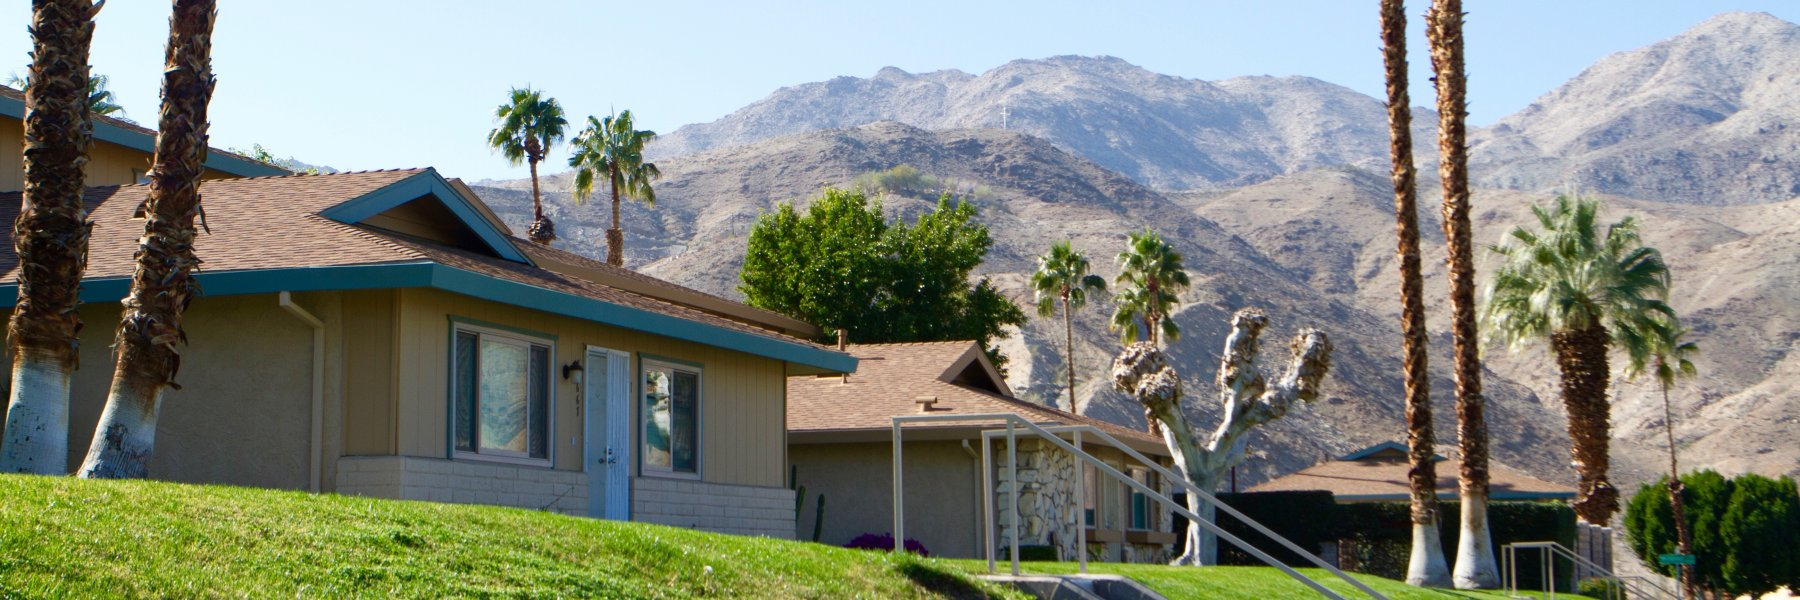 Indian Creek Villas is a community of condos in Palm Desert California